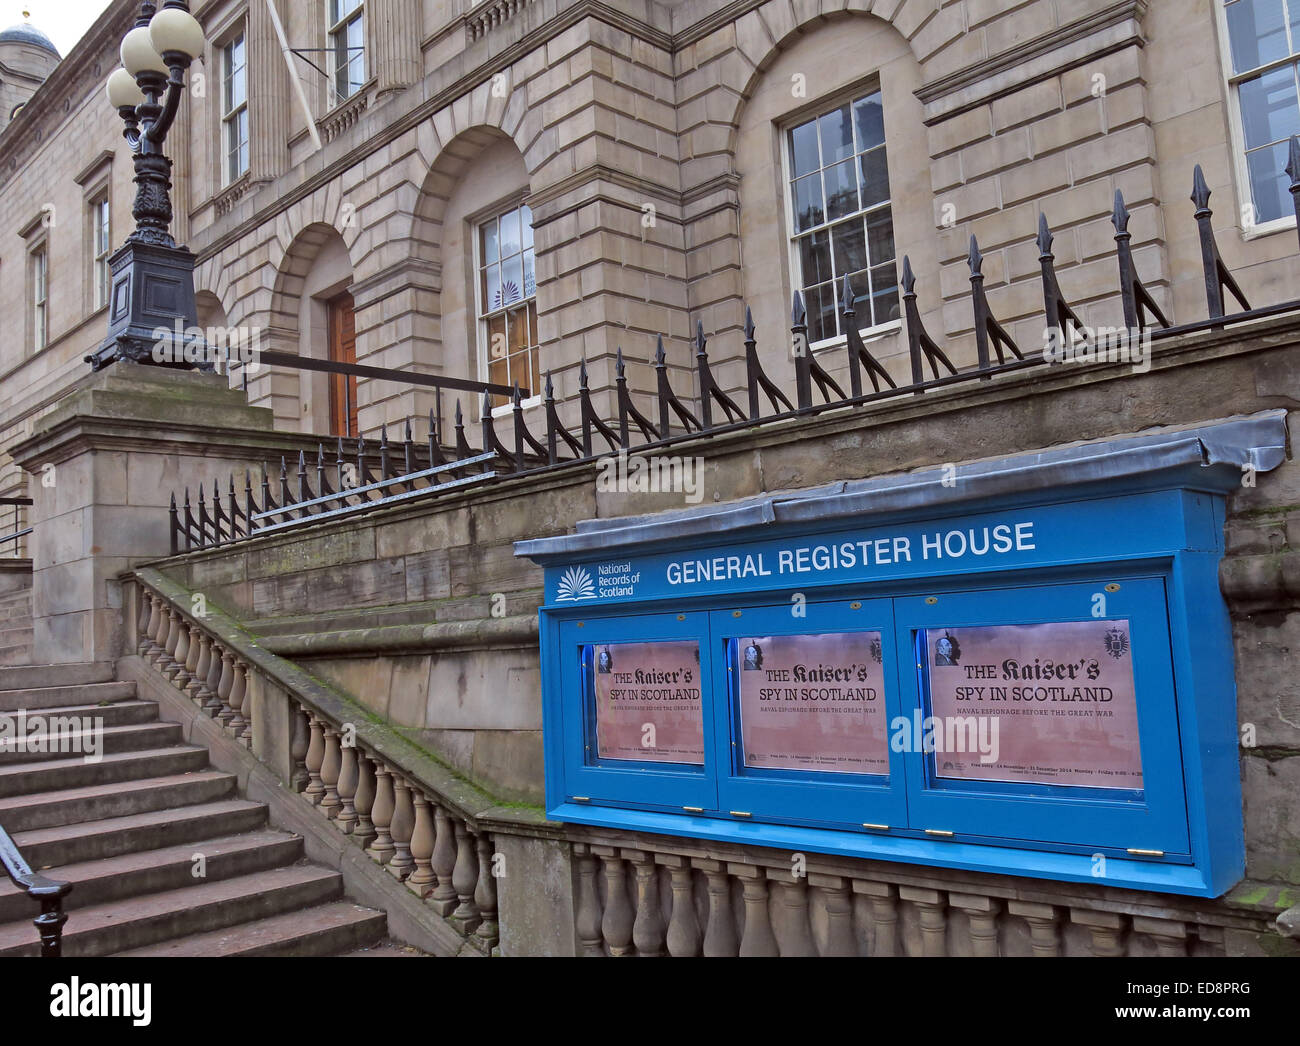 building,General Register Office,steps,sign,outside,exterior,stone,city,historic,history,Accountant,in,Bankruptcy,and,the,Court,of,the,Lord,Lyon,and,housed,the,Office,of,Director,of,Chancery,tourism,tourist,Surname,find,finding,Scottish,ancestors,family history,Italianate structure,Gotonysmith,Robert Matheson,archives,archive,birth,death and marriage records,genealogists,Buy Pictures of,Buy Images Of,Scotlands History,Scotlands History